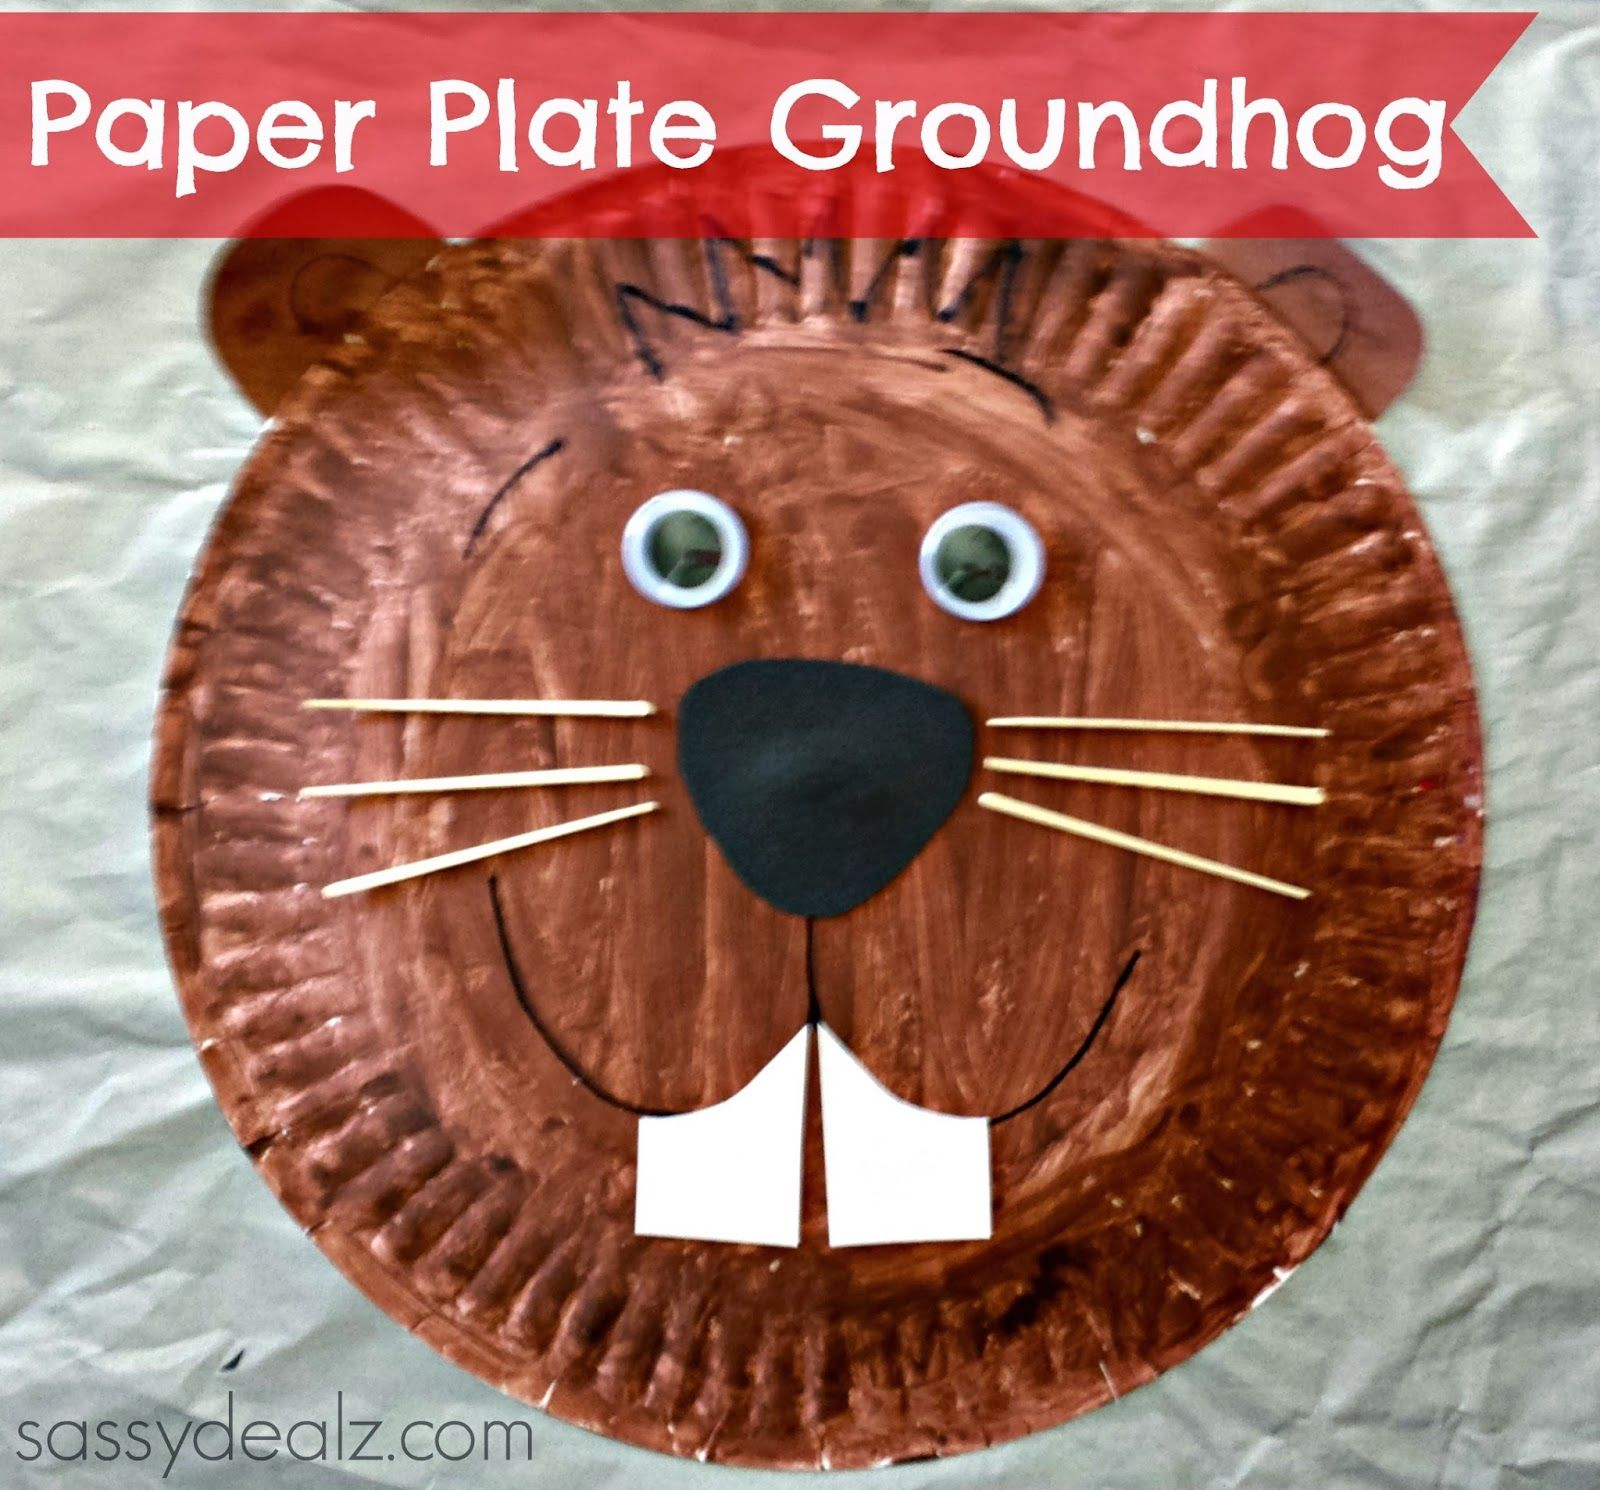 Groundhog Paper Plate Craft For Kids Groundhogs Day Art